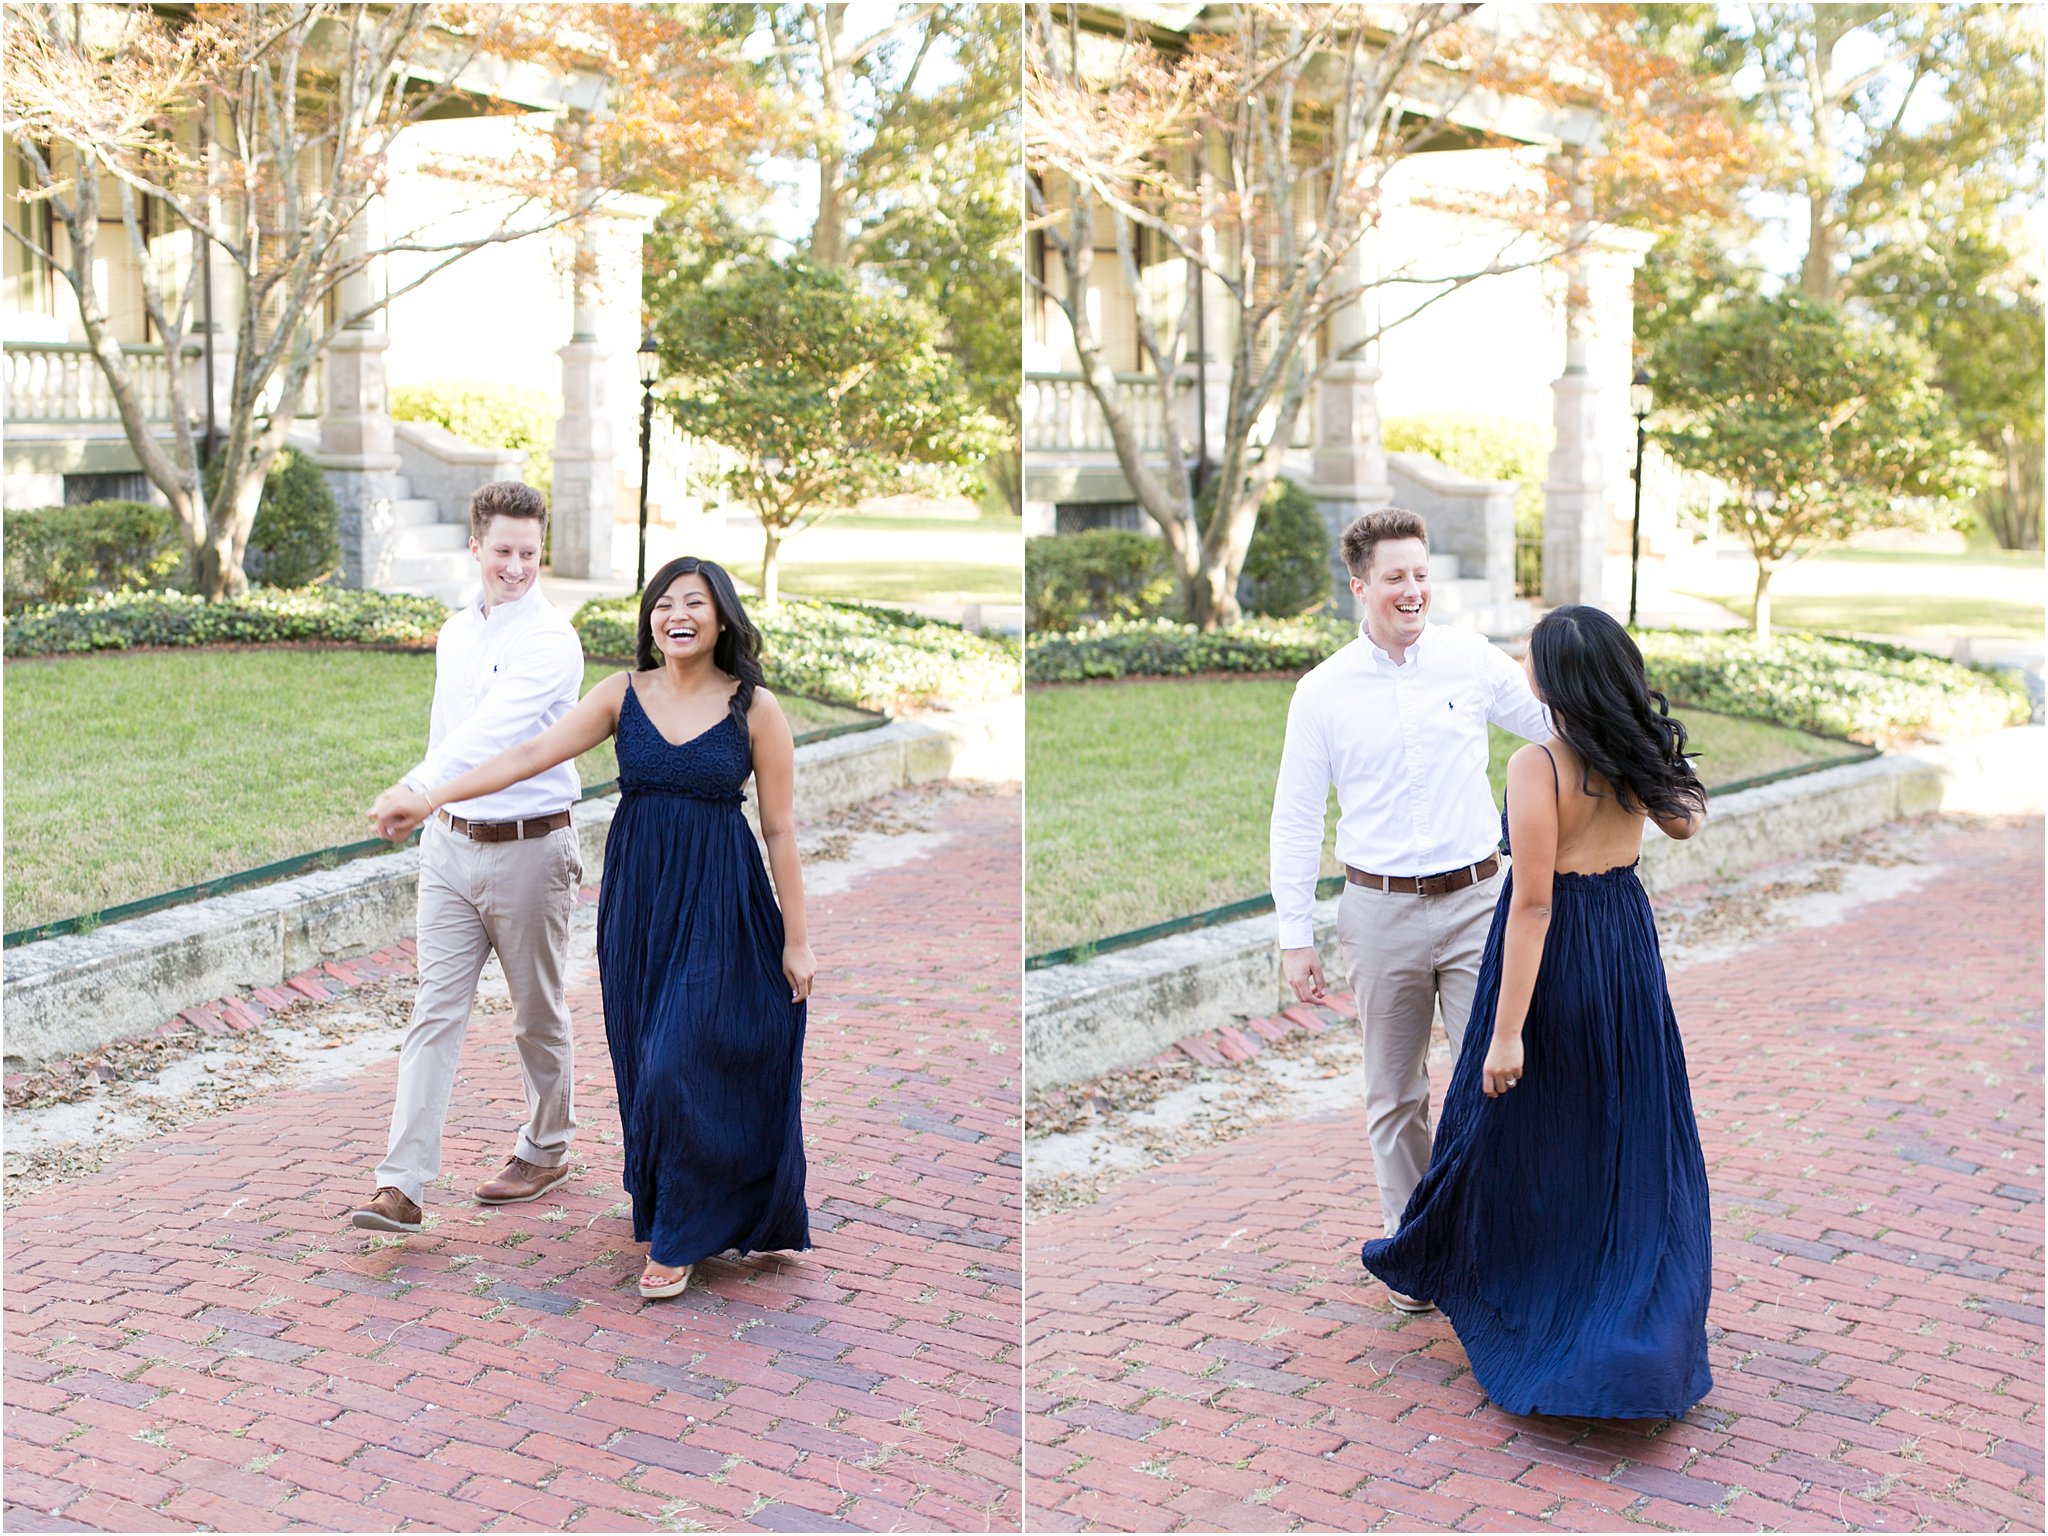 jessica_ryan_photography_virginia_smithfield_historical_downtown_engagement_portraits_candid_authentic_3698